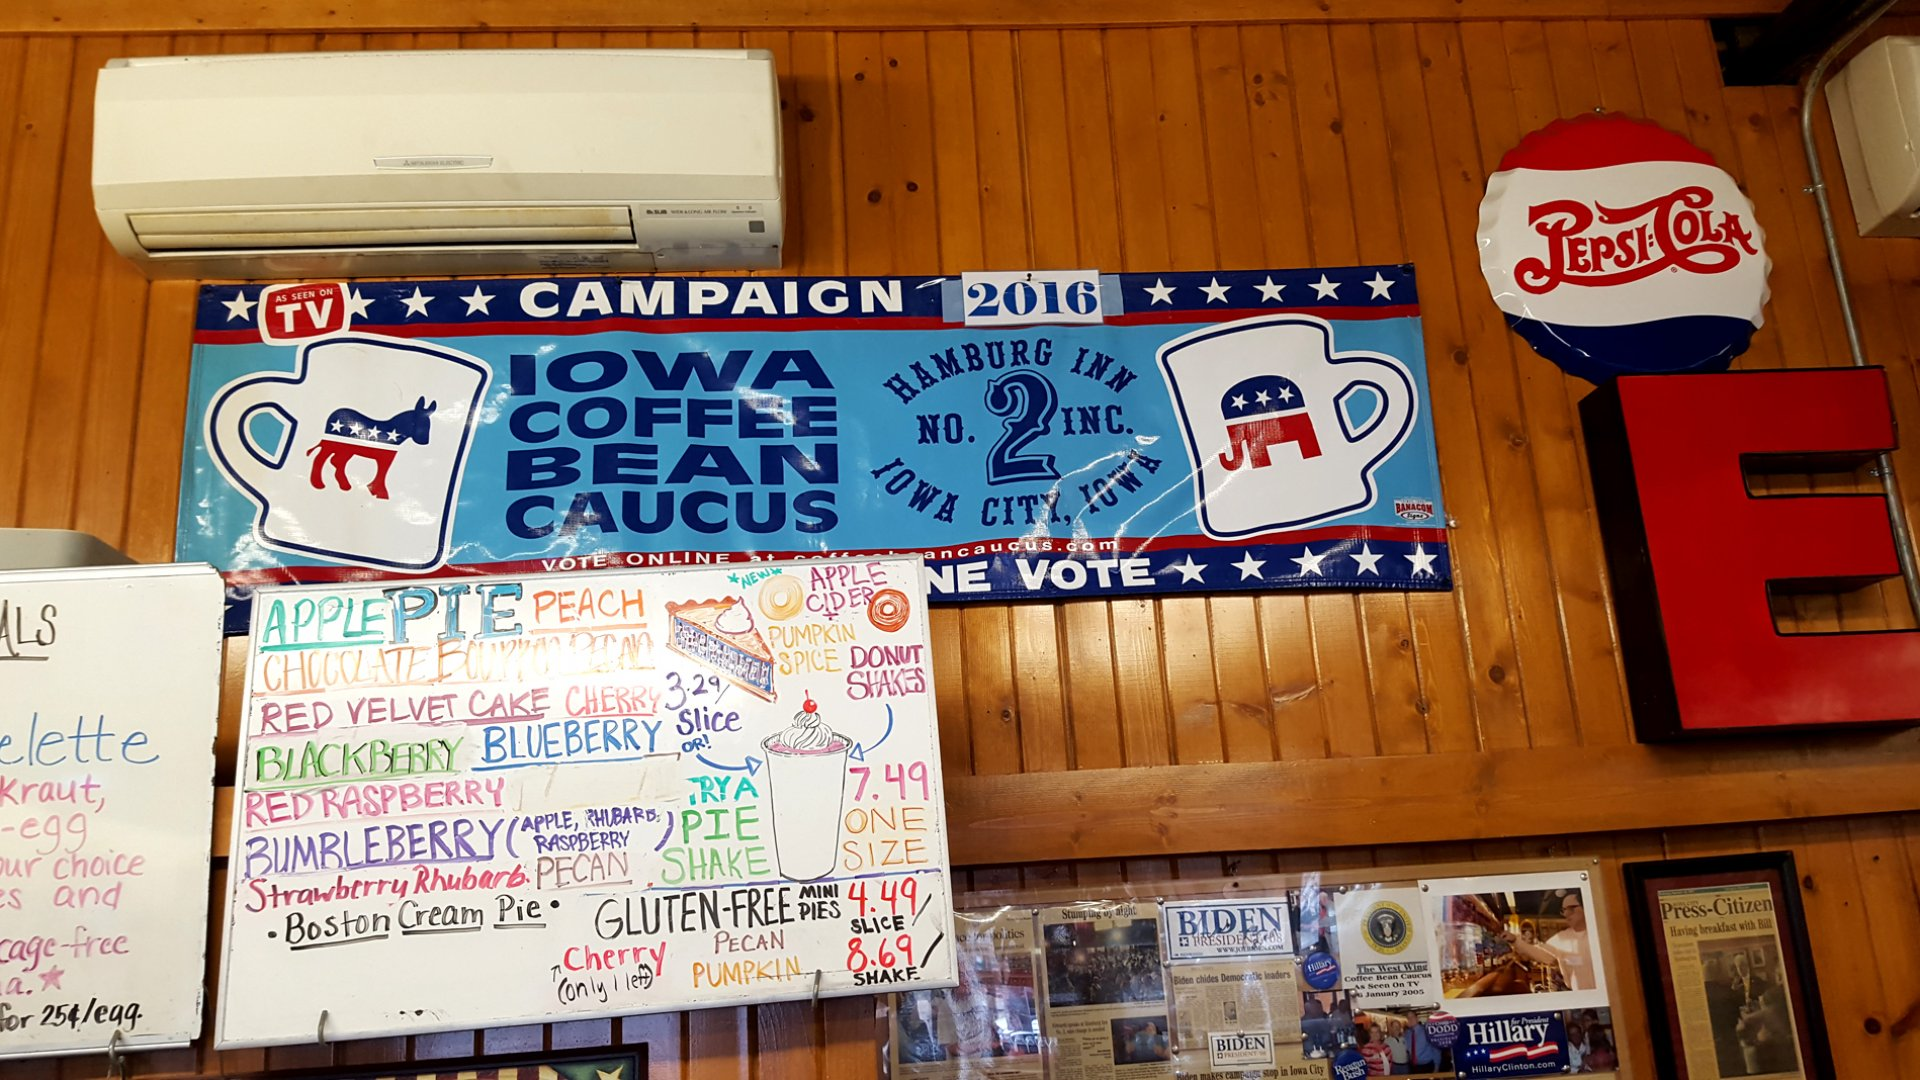 How These Business Owners Are Cashing In on the Iowa Caucuses